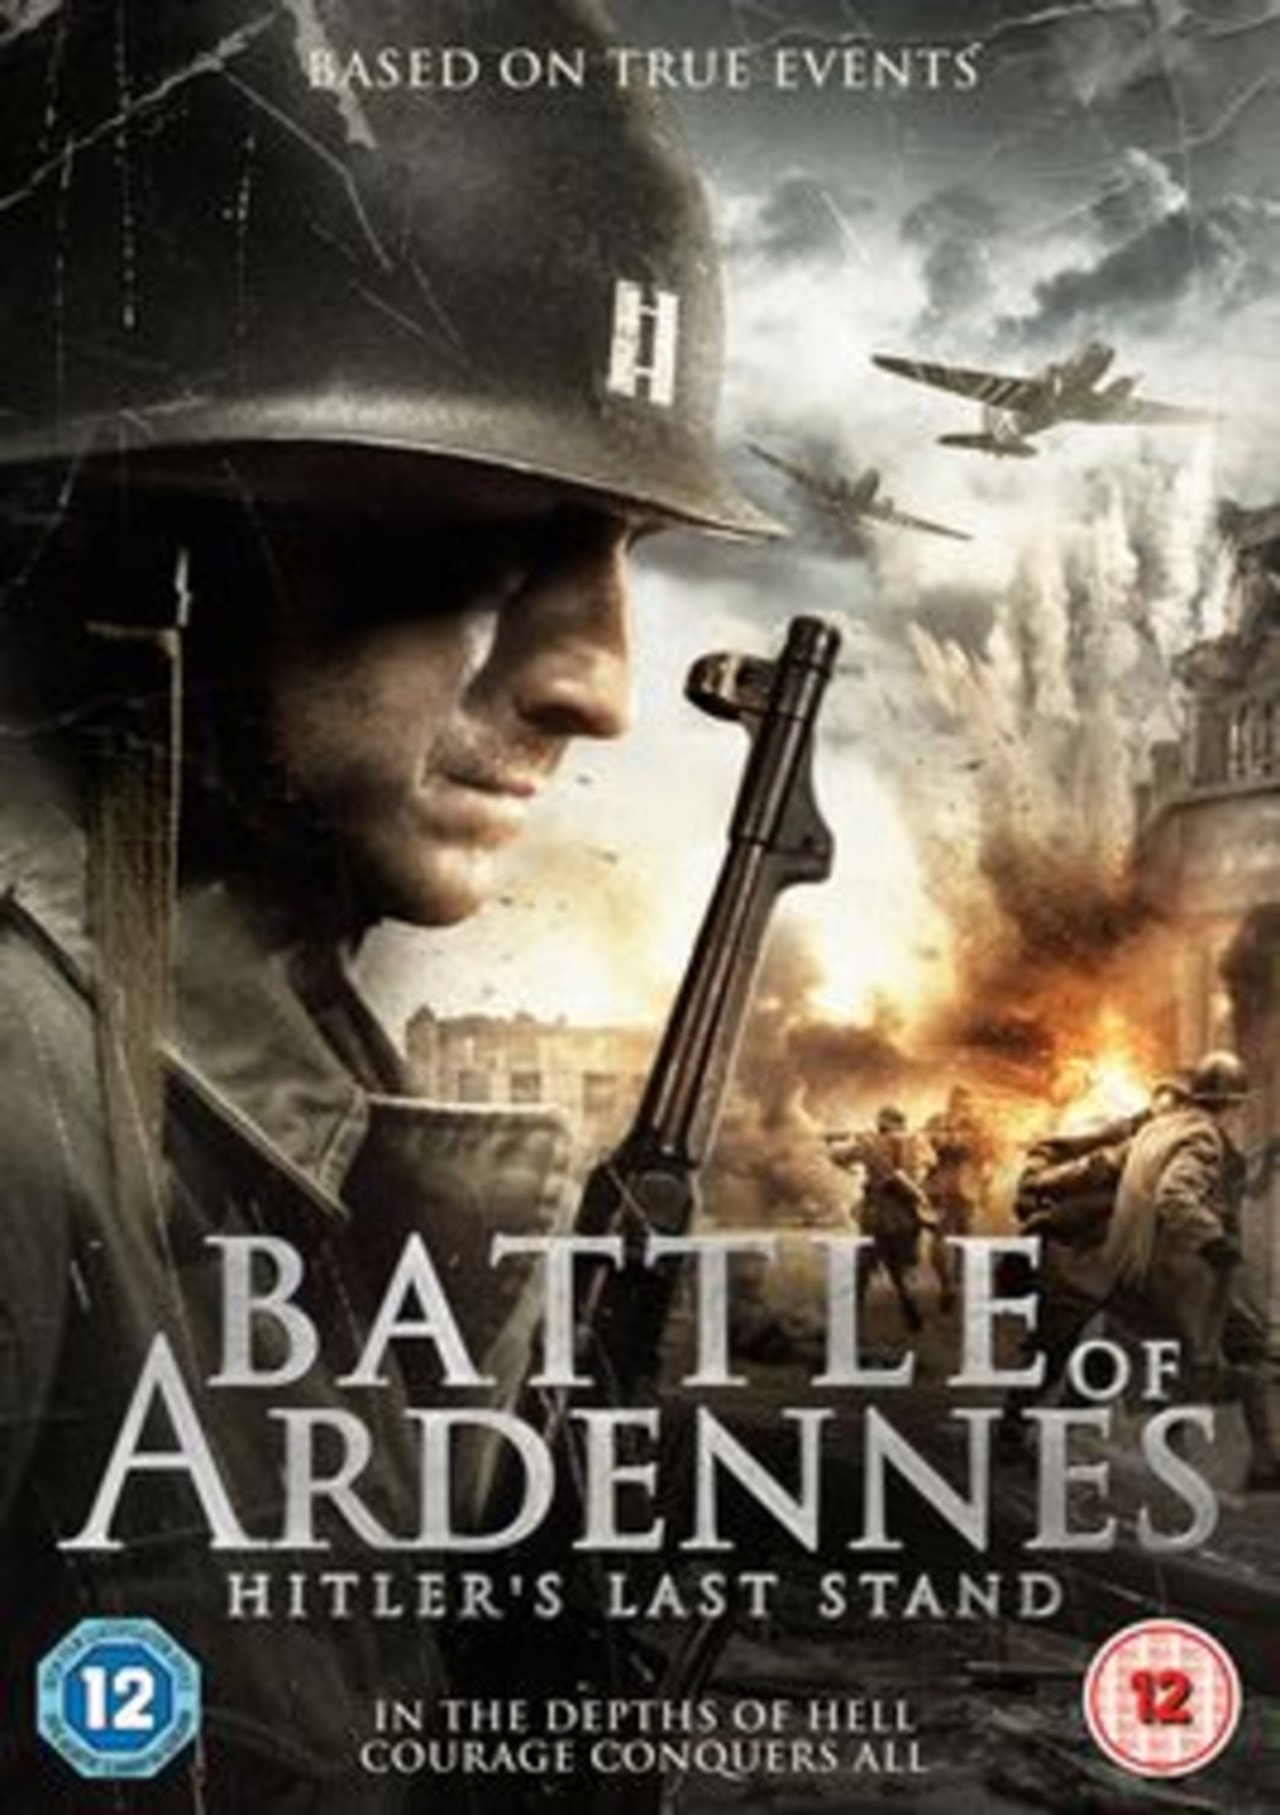 Battle of Ardennes - Hitler's Last Stand - 1